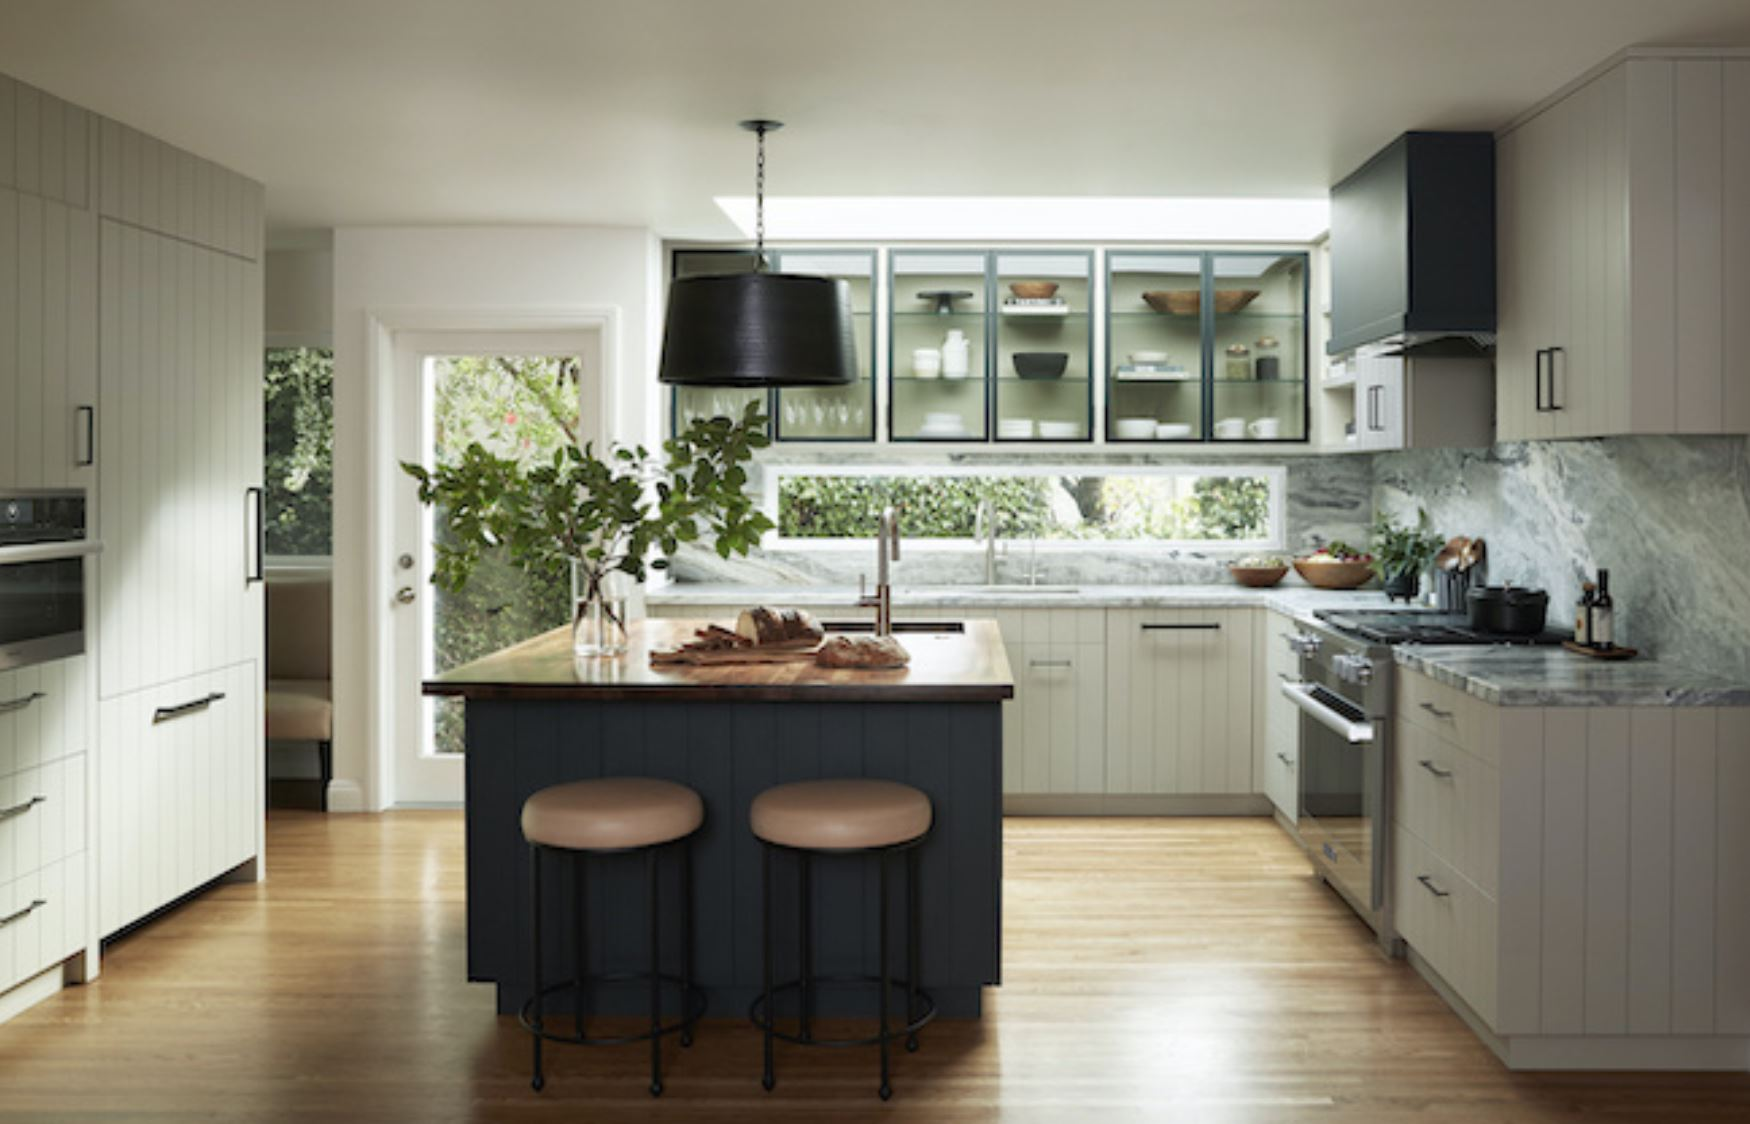 Realtor Magazine 2021 03 15 Ten Kitchen Changes sought out by buyers in 2021 since the begining of the plandemic after going through the COVID-19 Coronavirus pandemic Hoey Team exp Realty 06